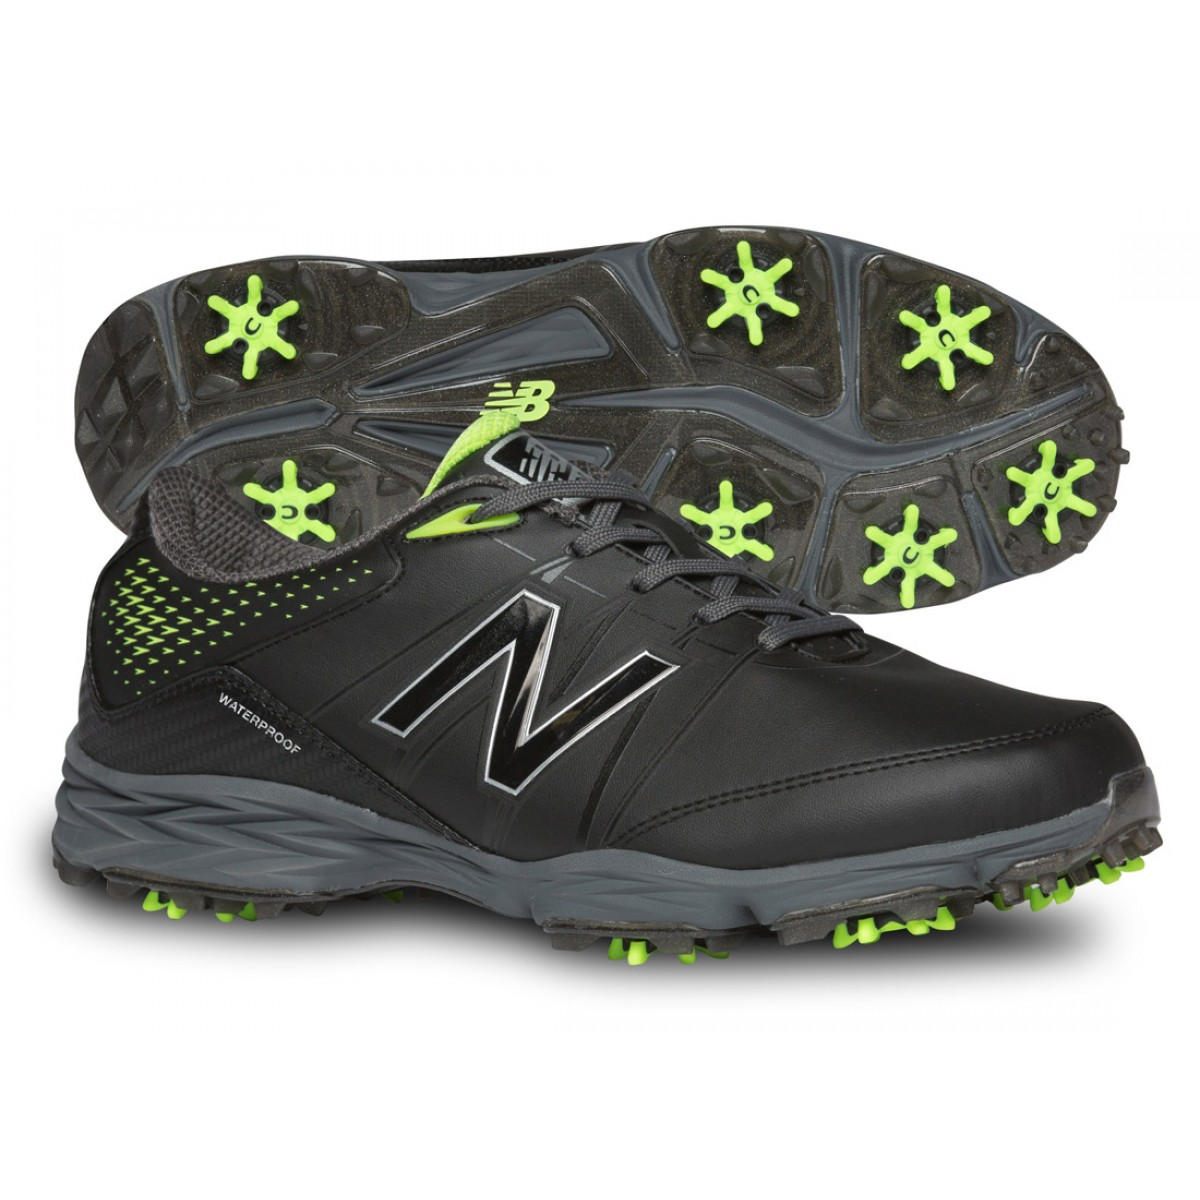 New Balance NBG2004 Golf Shoes - Black/Green